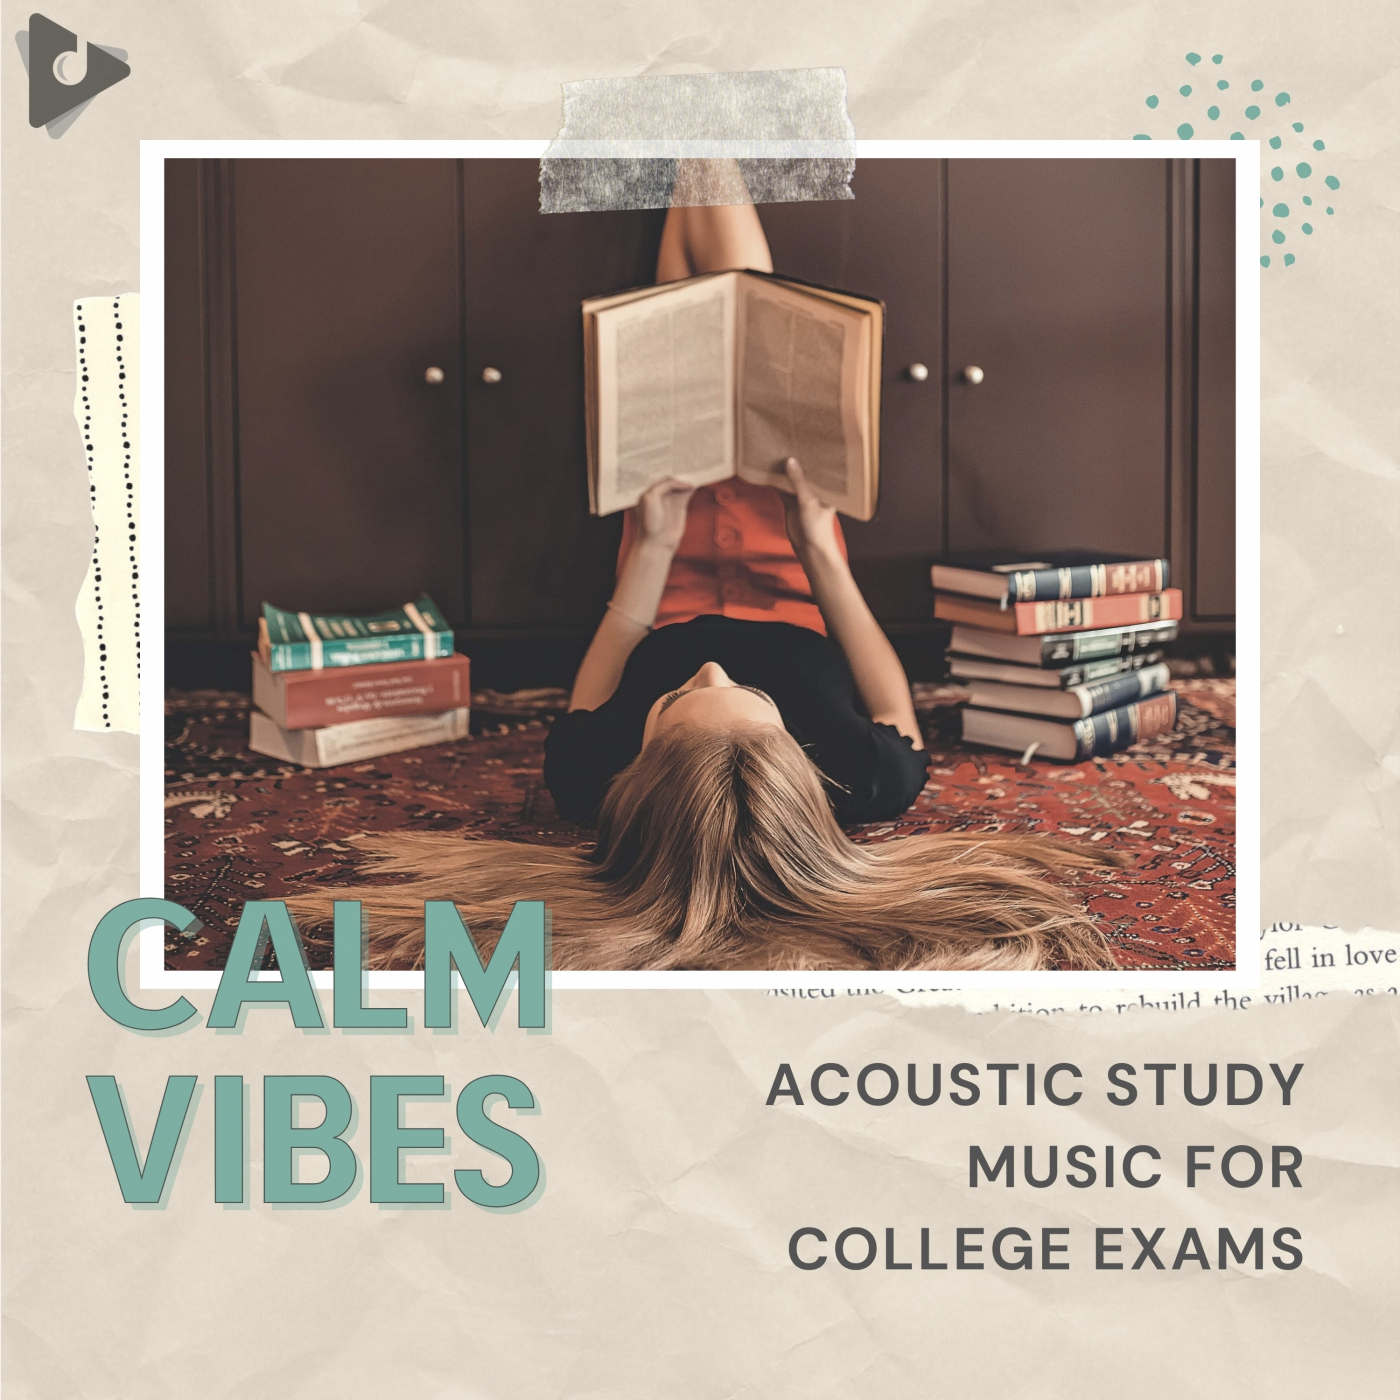 Acoustic Study Music for College Exams